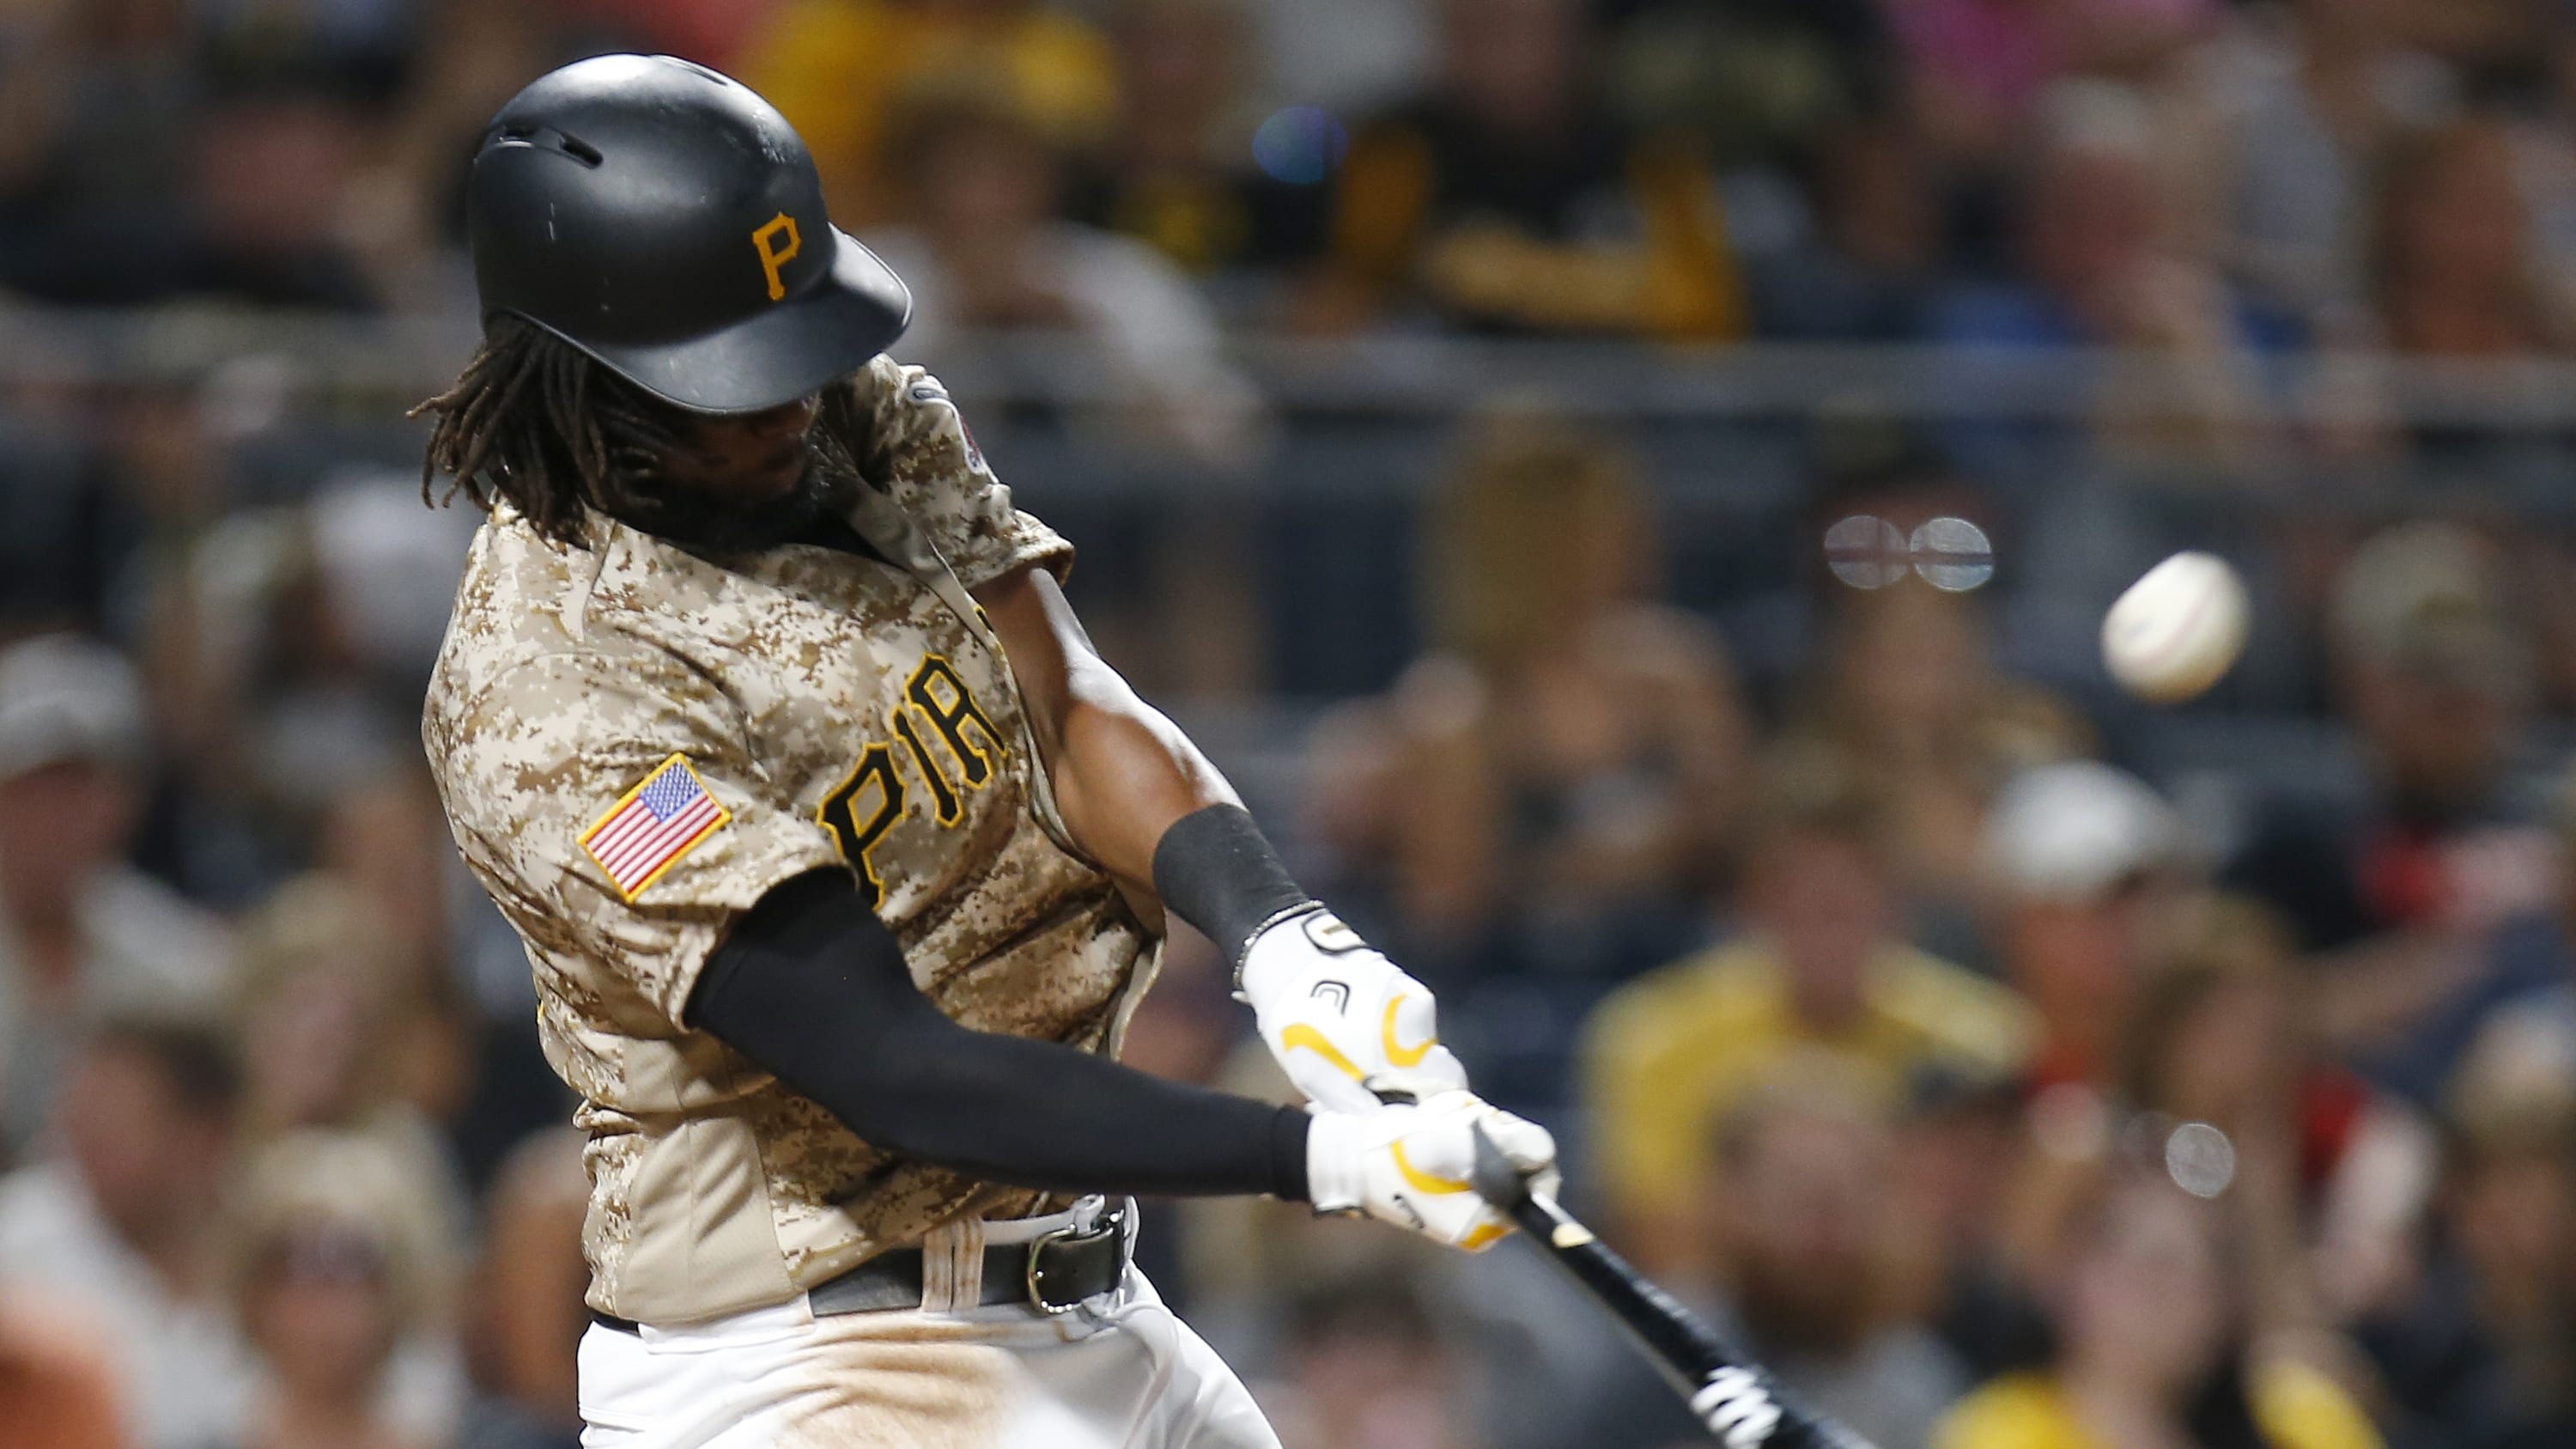 PITTSBURGH, PA - AUGUST 03:  Josh Bell #55 of the Pittsburgh Pirates hits a sacrifice fly in the seventh inning against the Cincinnati Reds at PNC Park on August 3, 2017 in Pittsburgh, Pennsylvania.  (Photo by Justin K. Aller/Getty Images)